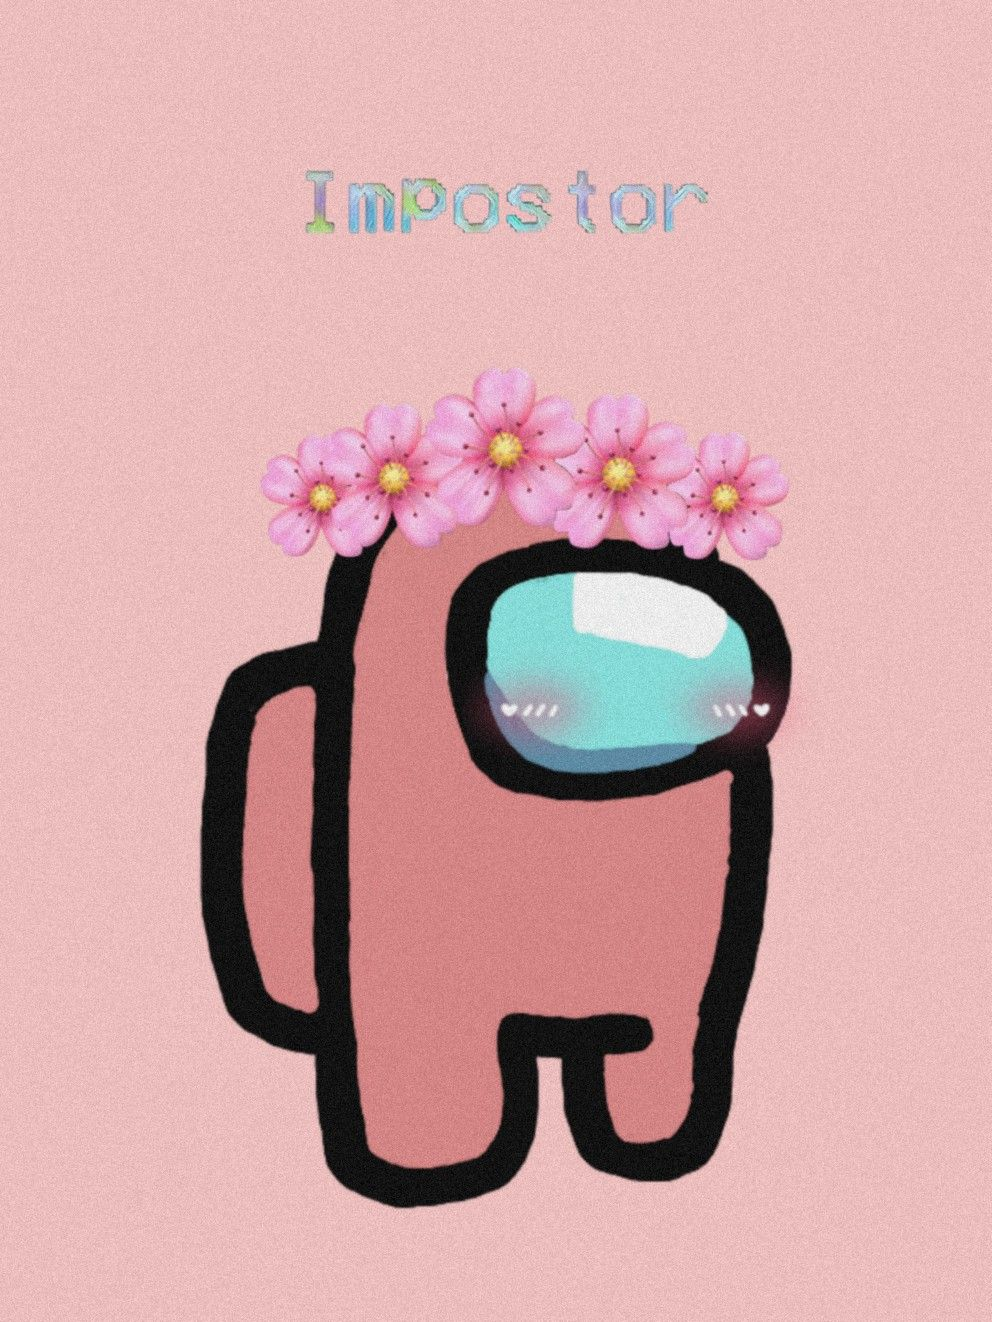 Among Us Pink Aesthetic Iphone Wallpaper Pretty Wallpaper Iphone Wallpaper Iphone Neon Among us is a massively multiplayer online game for a company of four to ten people. pink aesthetic iphone wallpaper